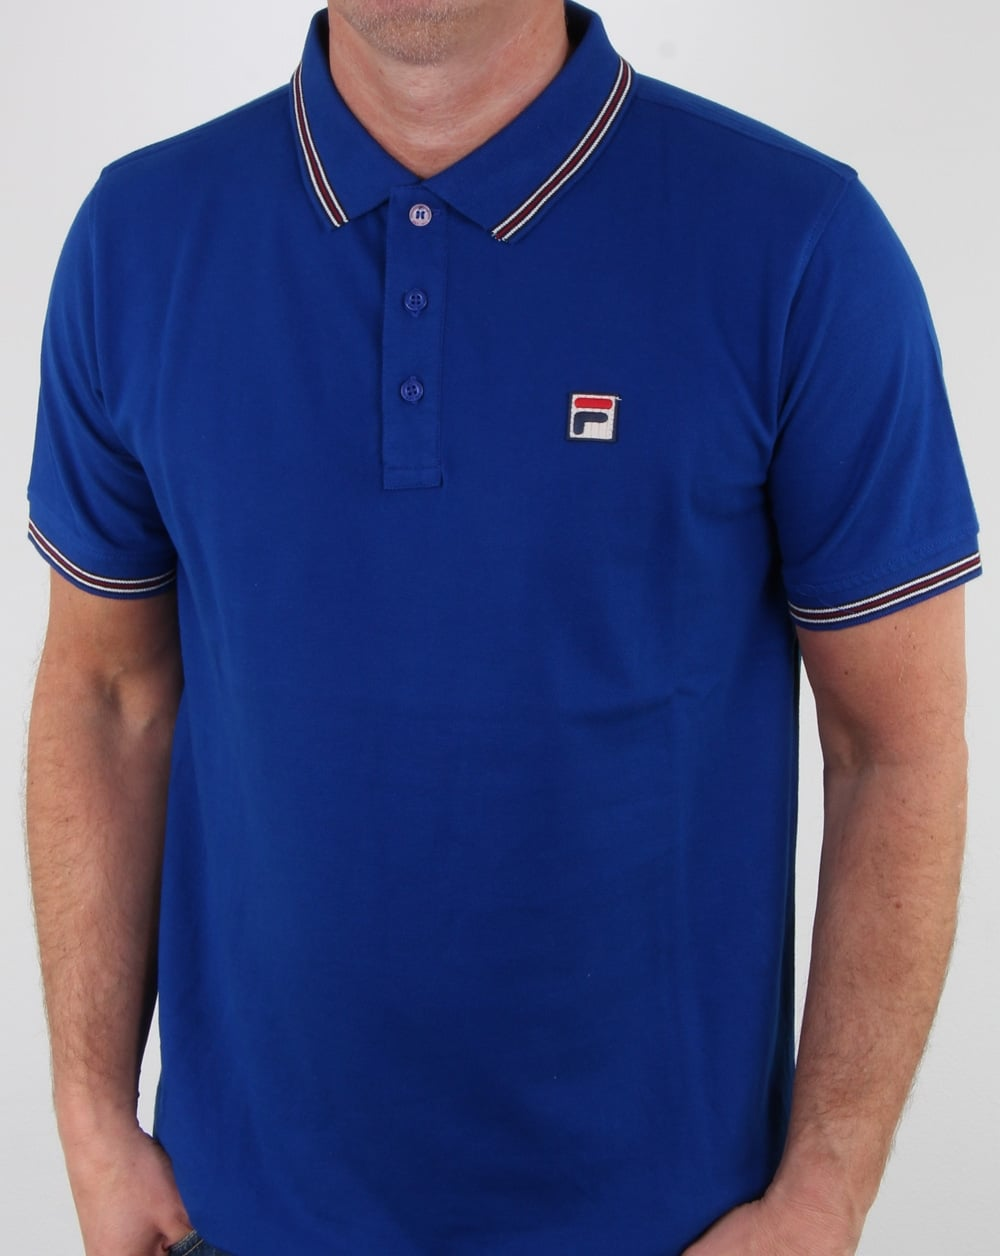 un milione Uluru implicazioni  Fila Vintage Matcho 4 Polo Shirt Royal Blue, Mens, Polo, Borg, Cotton